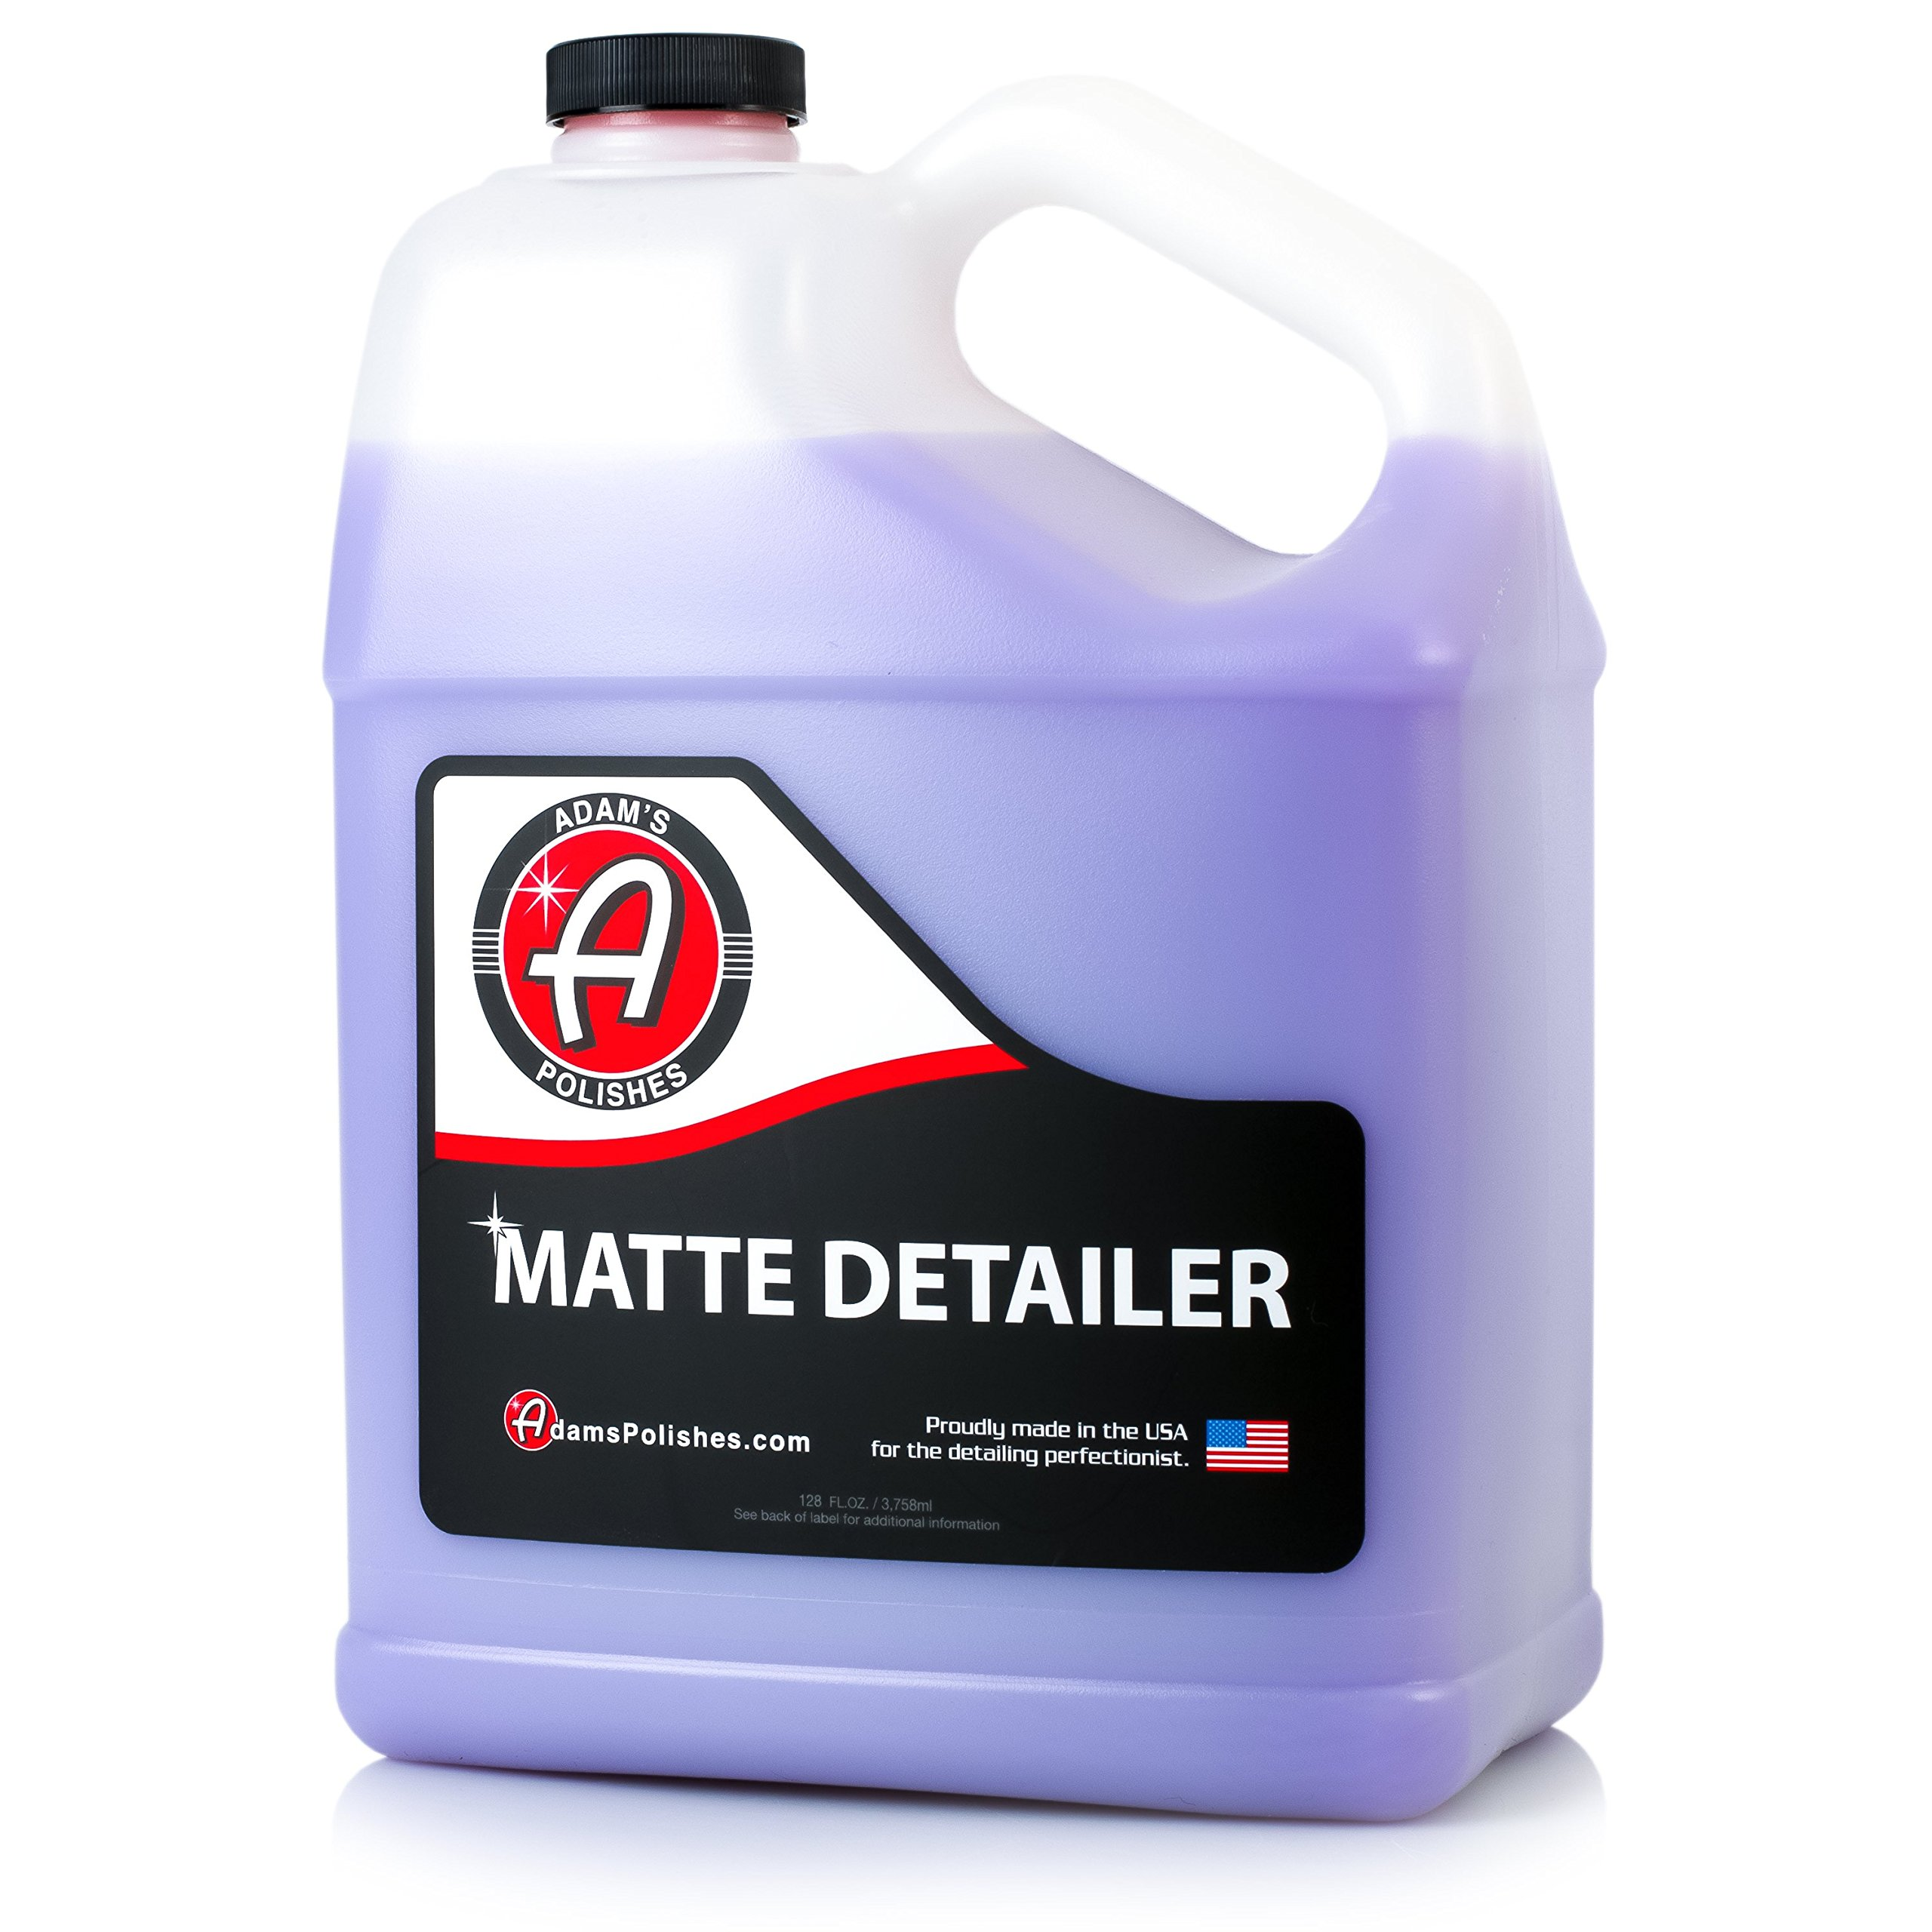 Adam's Matte Detailer - Specialized Formulation Perfect for Any Matte, Satin, and Gloss Finishes - Does Not Add Any Level of Shine - Easy to Use, with No Streaking or Residues (1 Gallon)